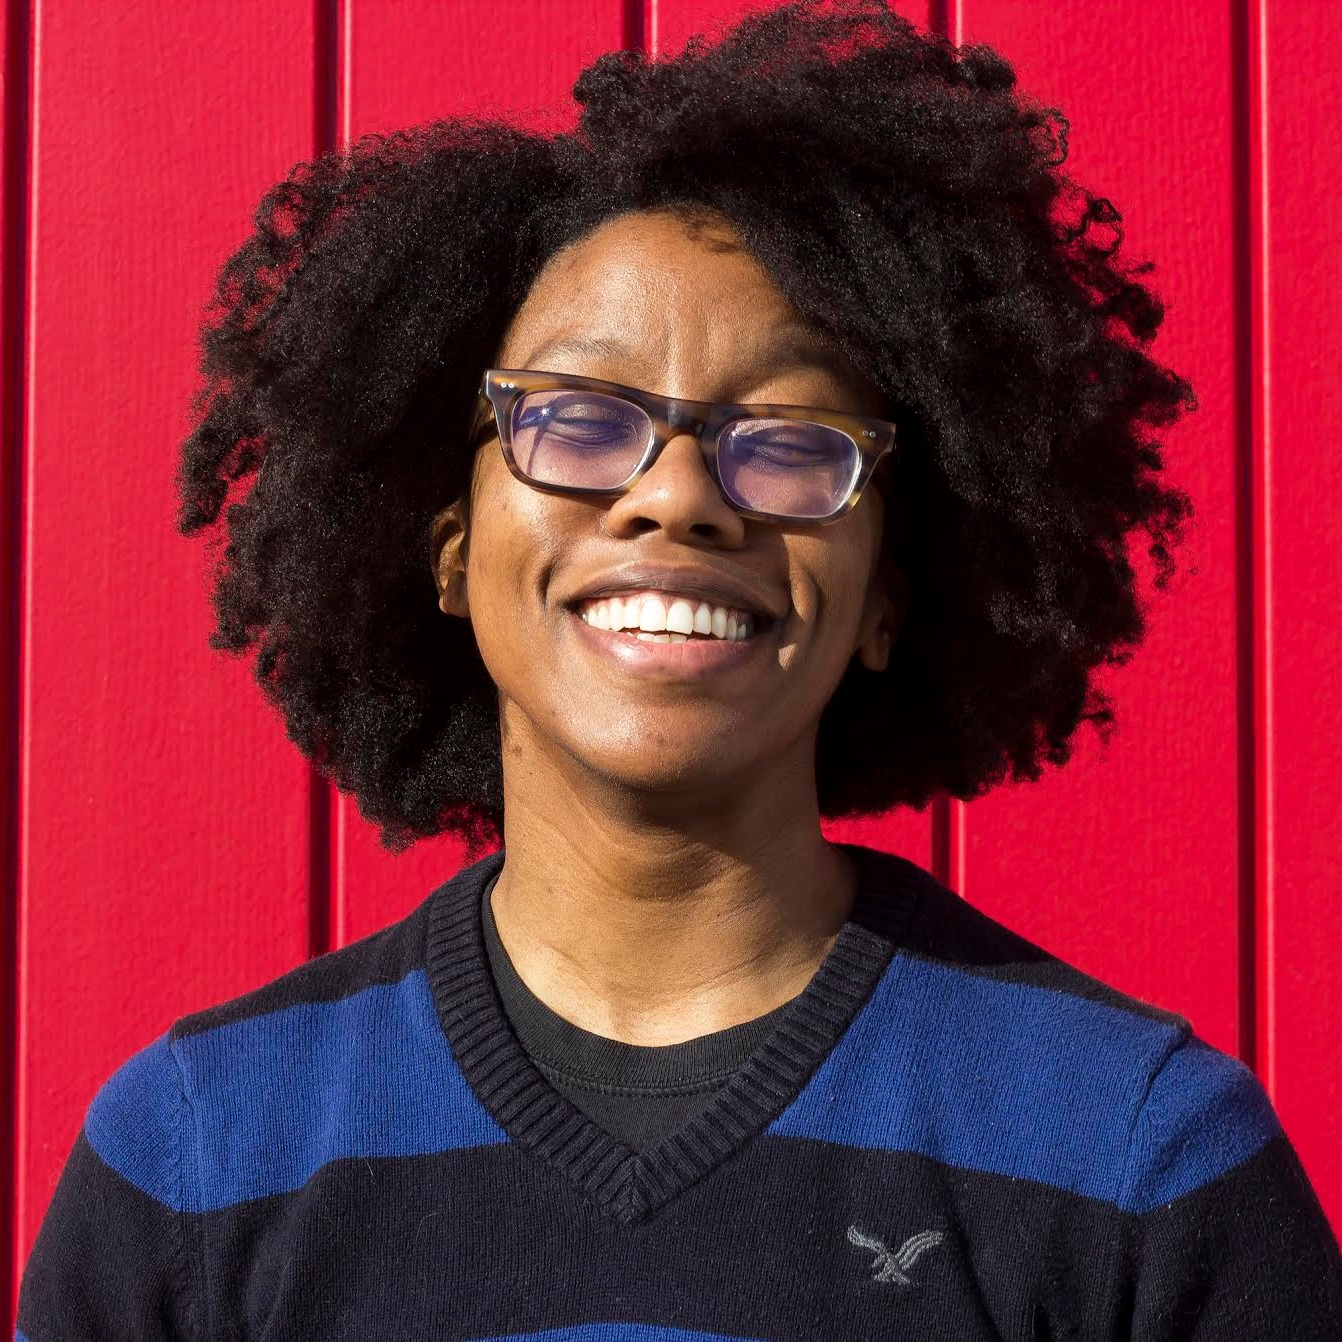 Donika Kelly - Donika Kelly is the author of the chapbook AVIARIUM (fivehundred places 2017), and the full-length collection BESTIARY (Graywolf 2016), winner of the 2015 Cave Canem Poetry Prize, the 2017 Hurston/Wright Award for poetry, and the 2018 Kate Tufts Discovery Award. BESTIARY was long listed for the National Book Award (2016) and a finalist for a Lambda Literary Award and a Publishing Triangle Award (2017). A Cave Canem Graduate Fellow, she received her MFA in Writing from the Michener Center for Writers and a Ph.D. in English from Vanderbilt University. She is an Assistant Professor at Baruch College, where she teaches creative writing.